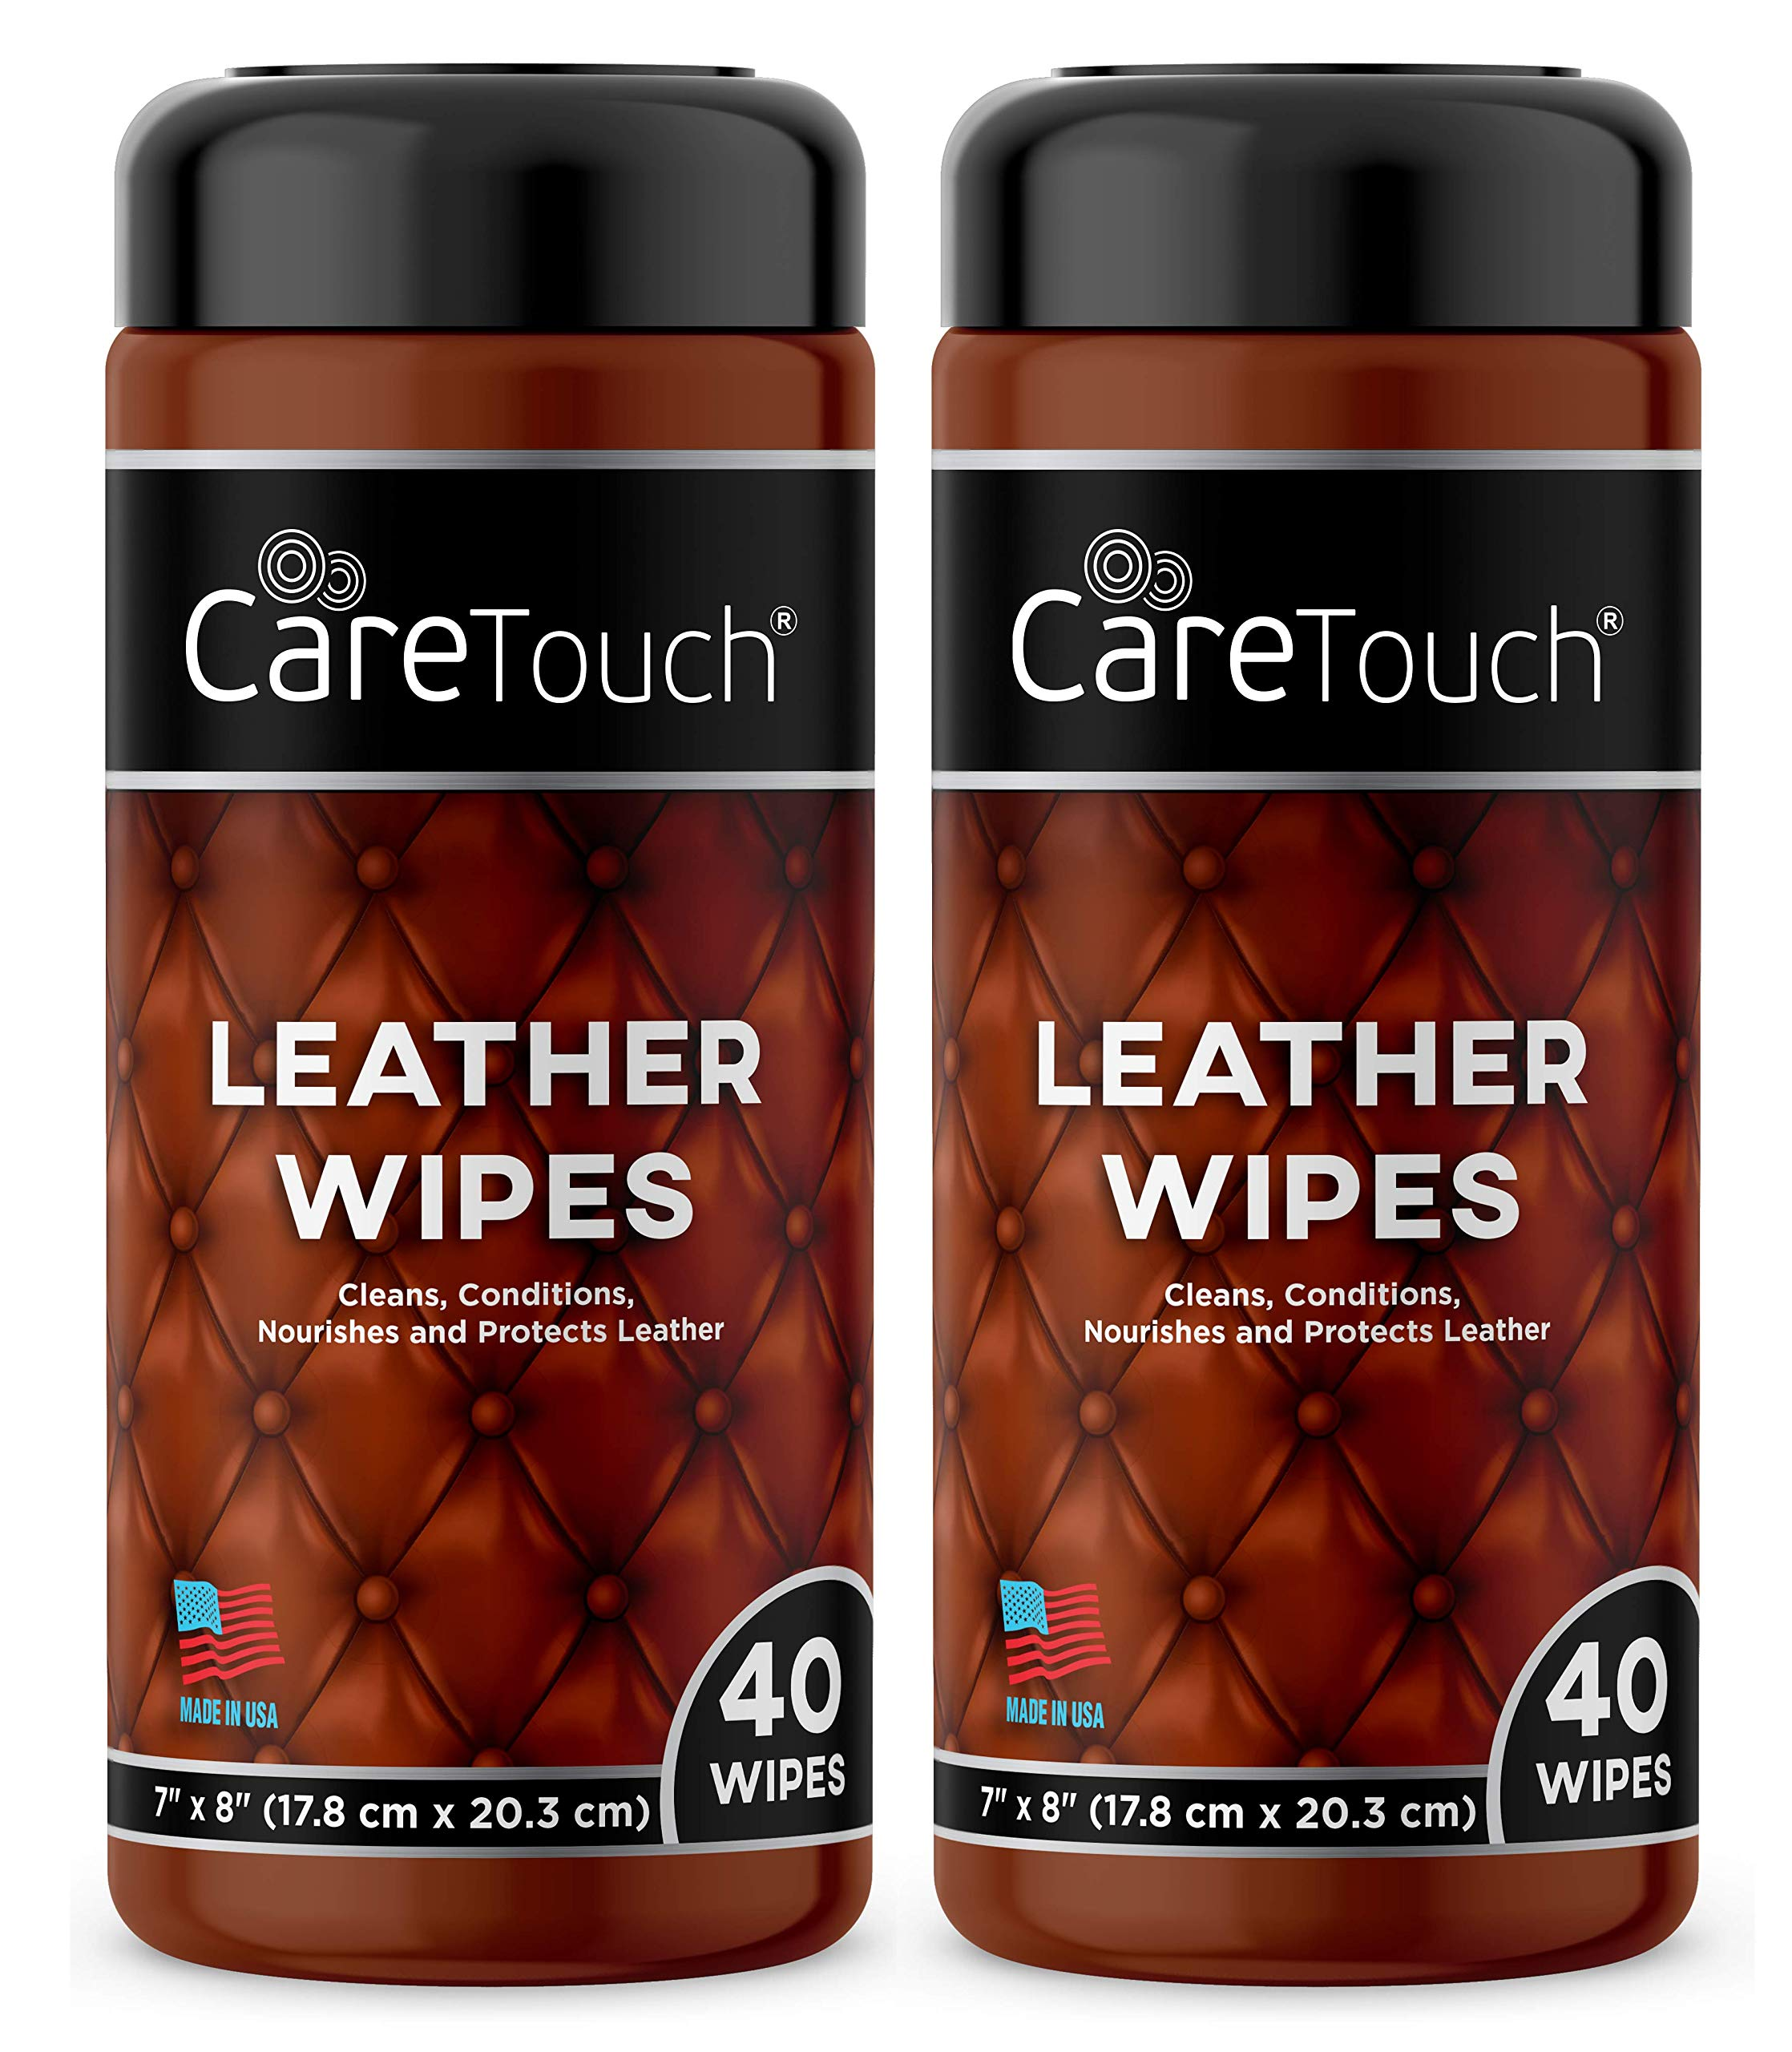 Care Touch Leather Cleaner Wipes for One-Step Cleaning, Conditioning, and Protecting - Pack of 2, 40 Wipes Each for Cars, Shoes and Other Leather Surfaces by Care Touch